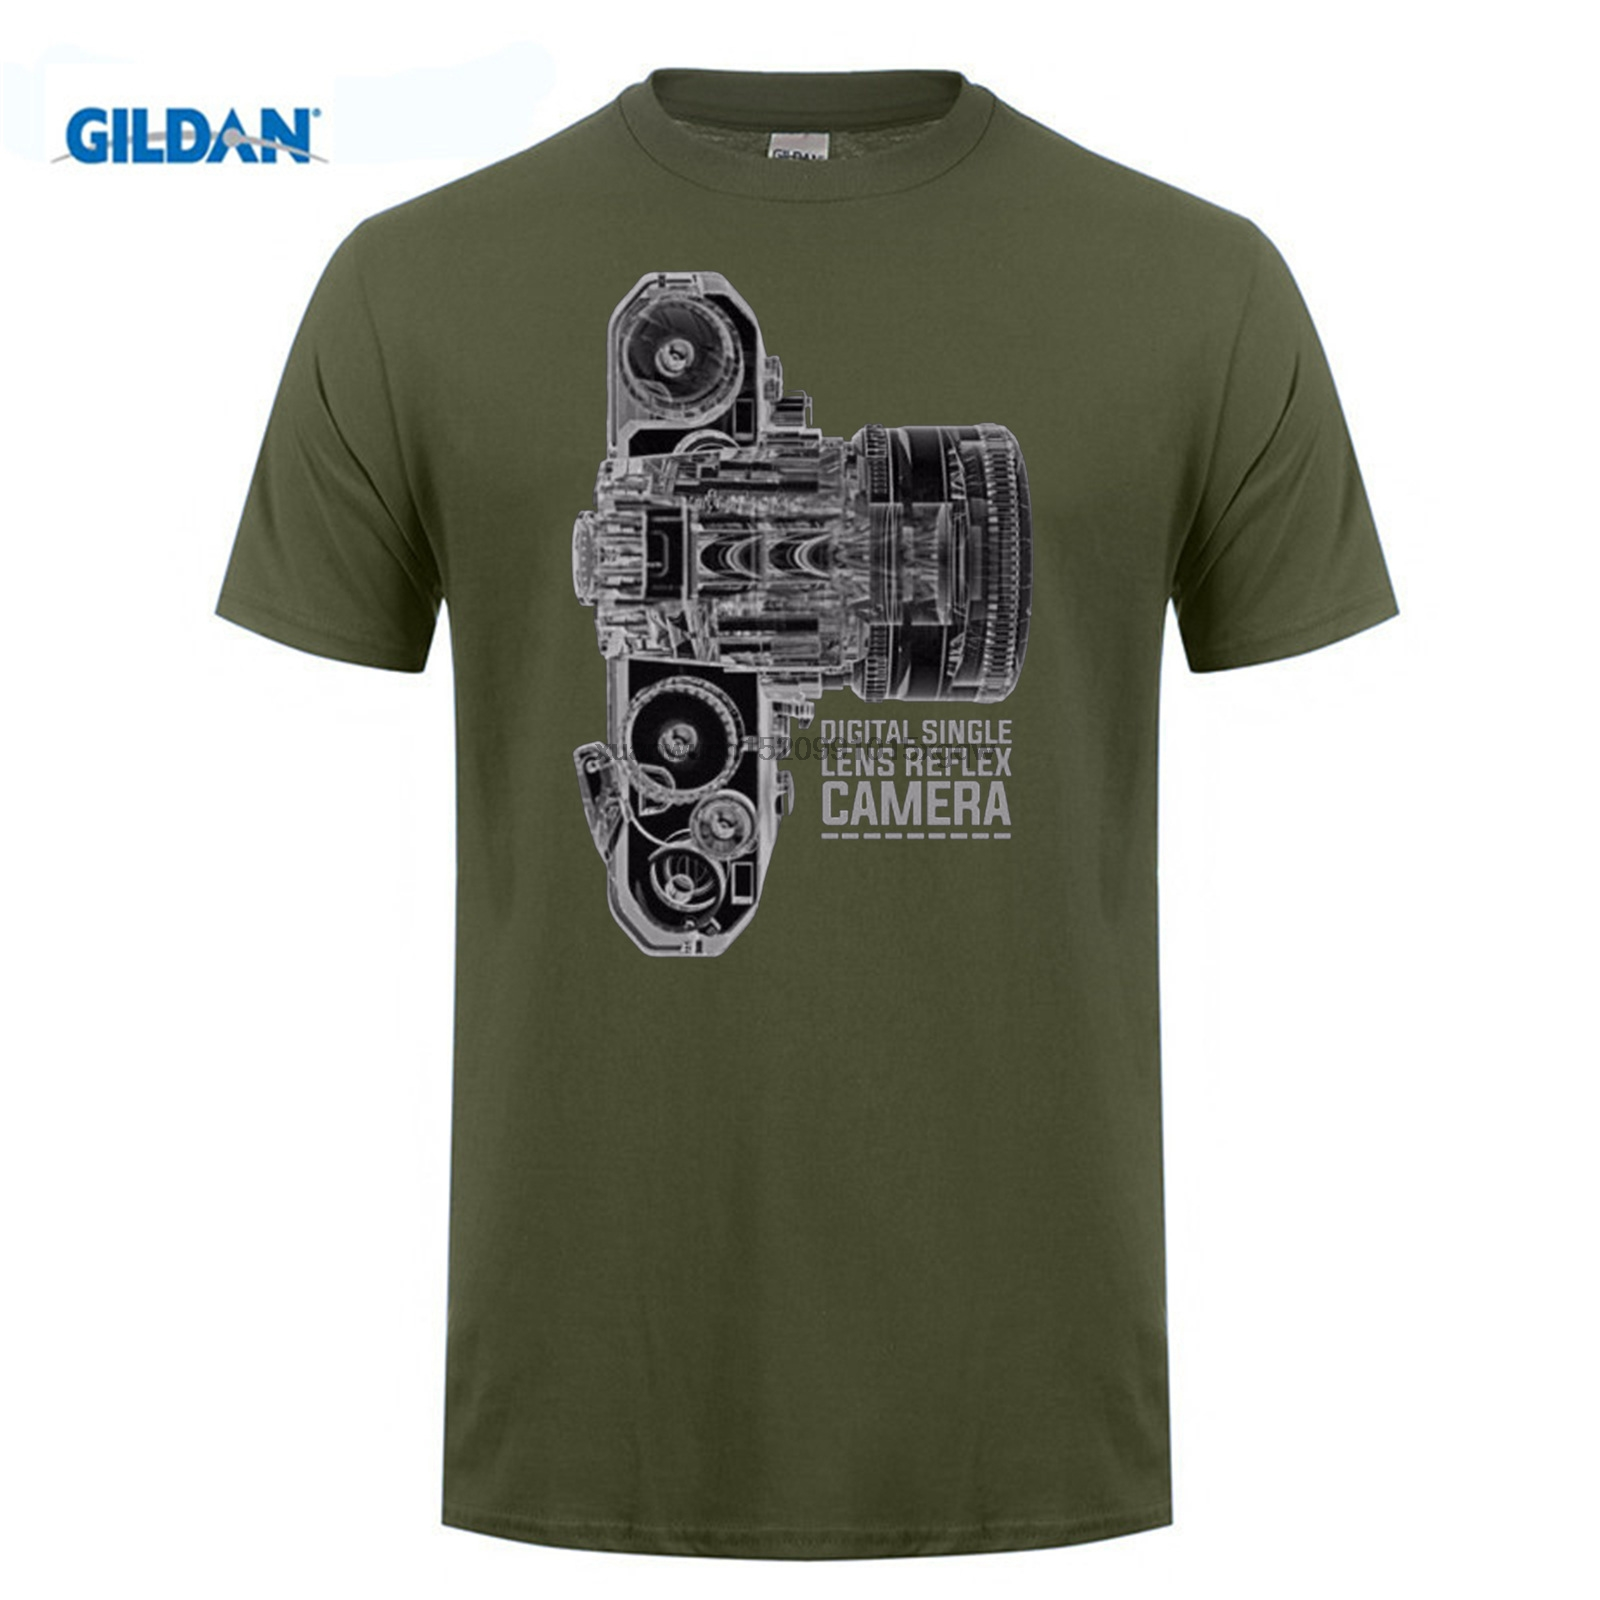 GILDAN Brand Clothing 100% Cotton Short Sleeve Summer T-Shirt Camera Dslr Technologie X Ray Photographie T Shirt Print